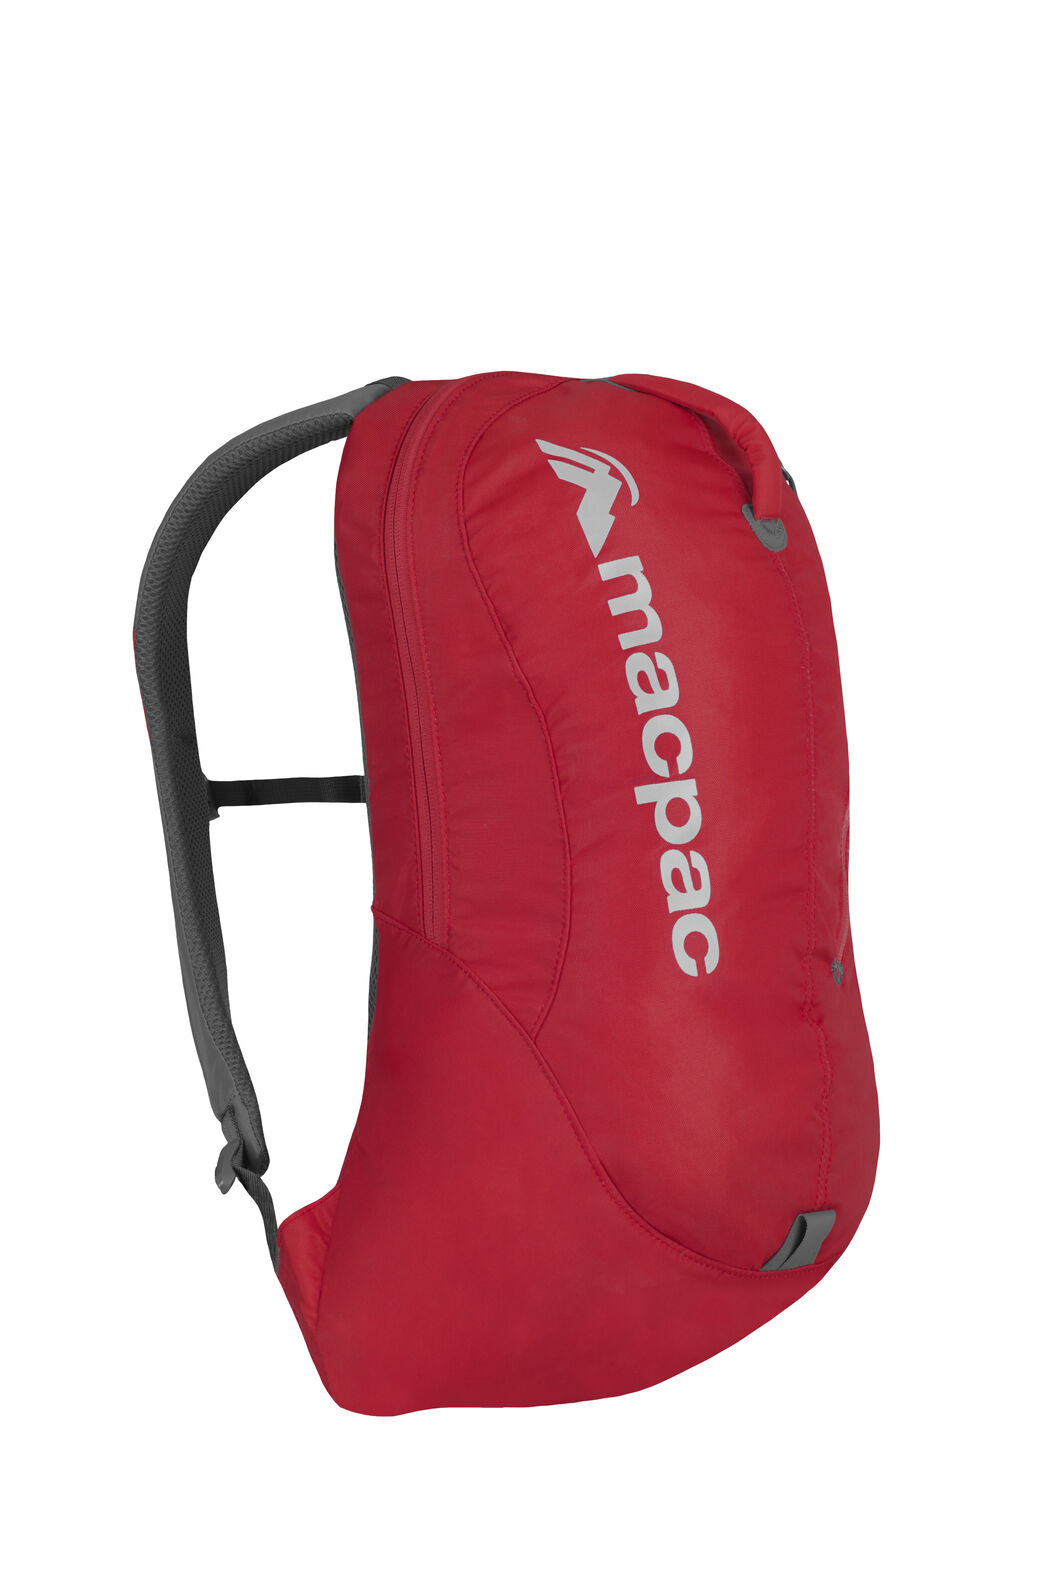 Macpac Kahuna 1.1 18L Backpack, Haute Red, hi-res